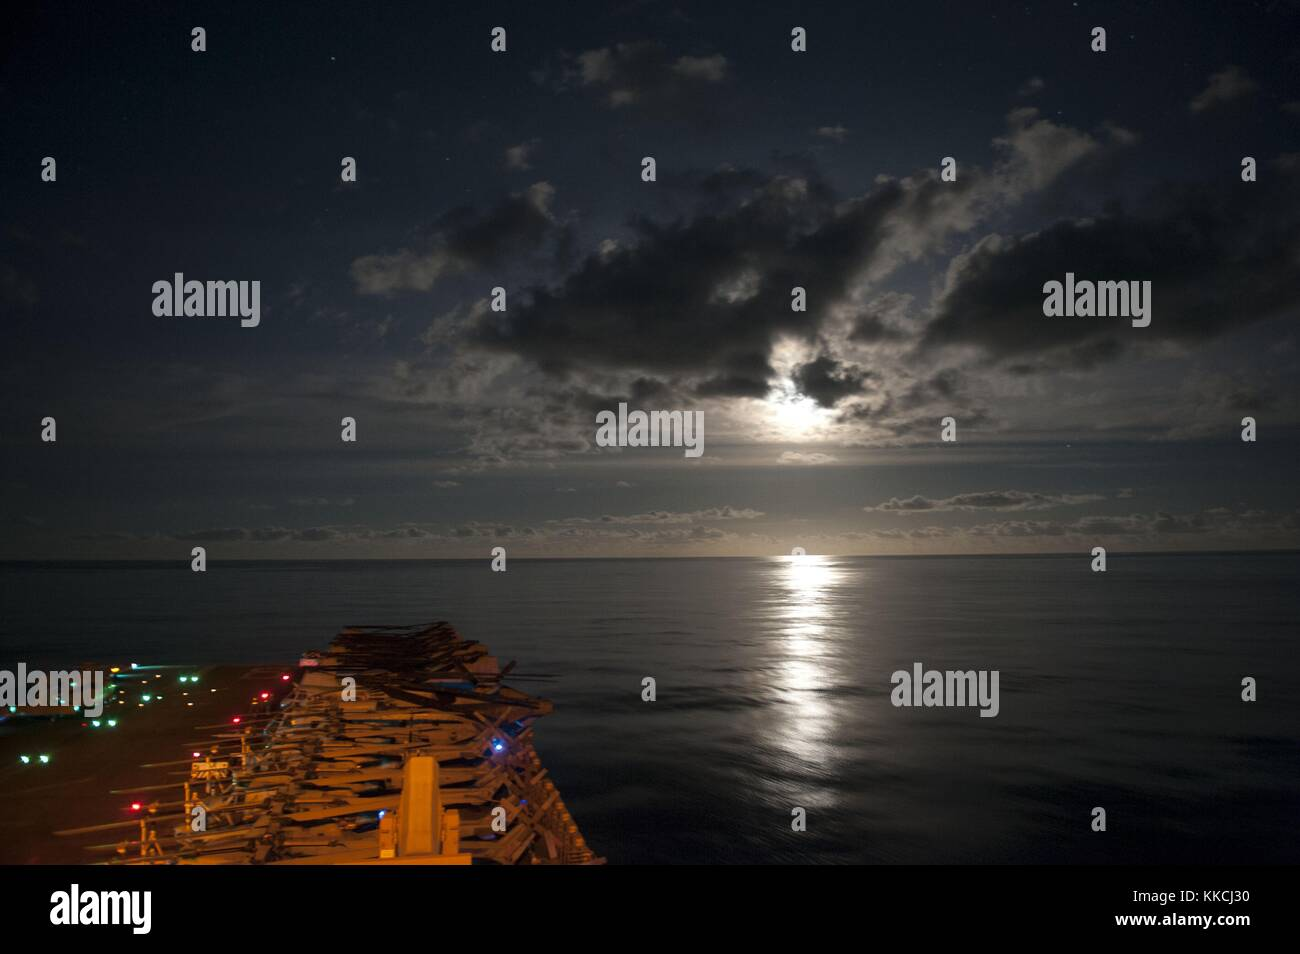 The amphibious assault ship USS Makin Island LHD 8 transits the Pacific Ocean under the light of a full moon, Pacific Stock Photo